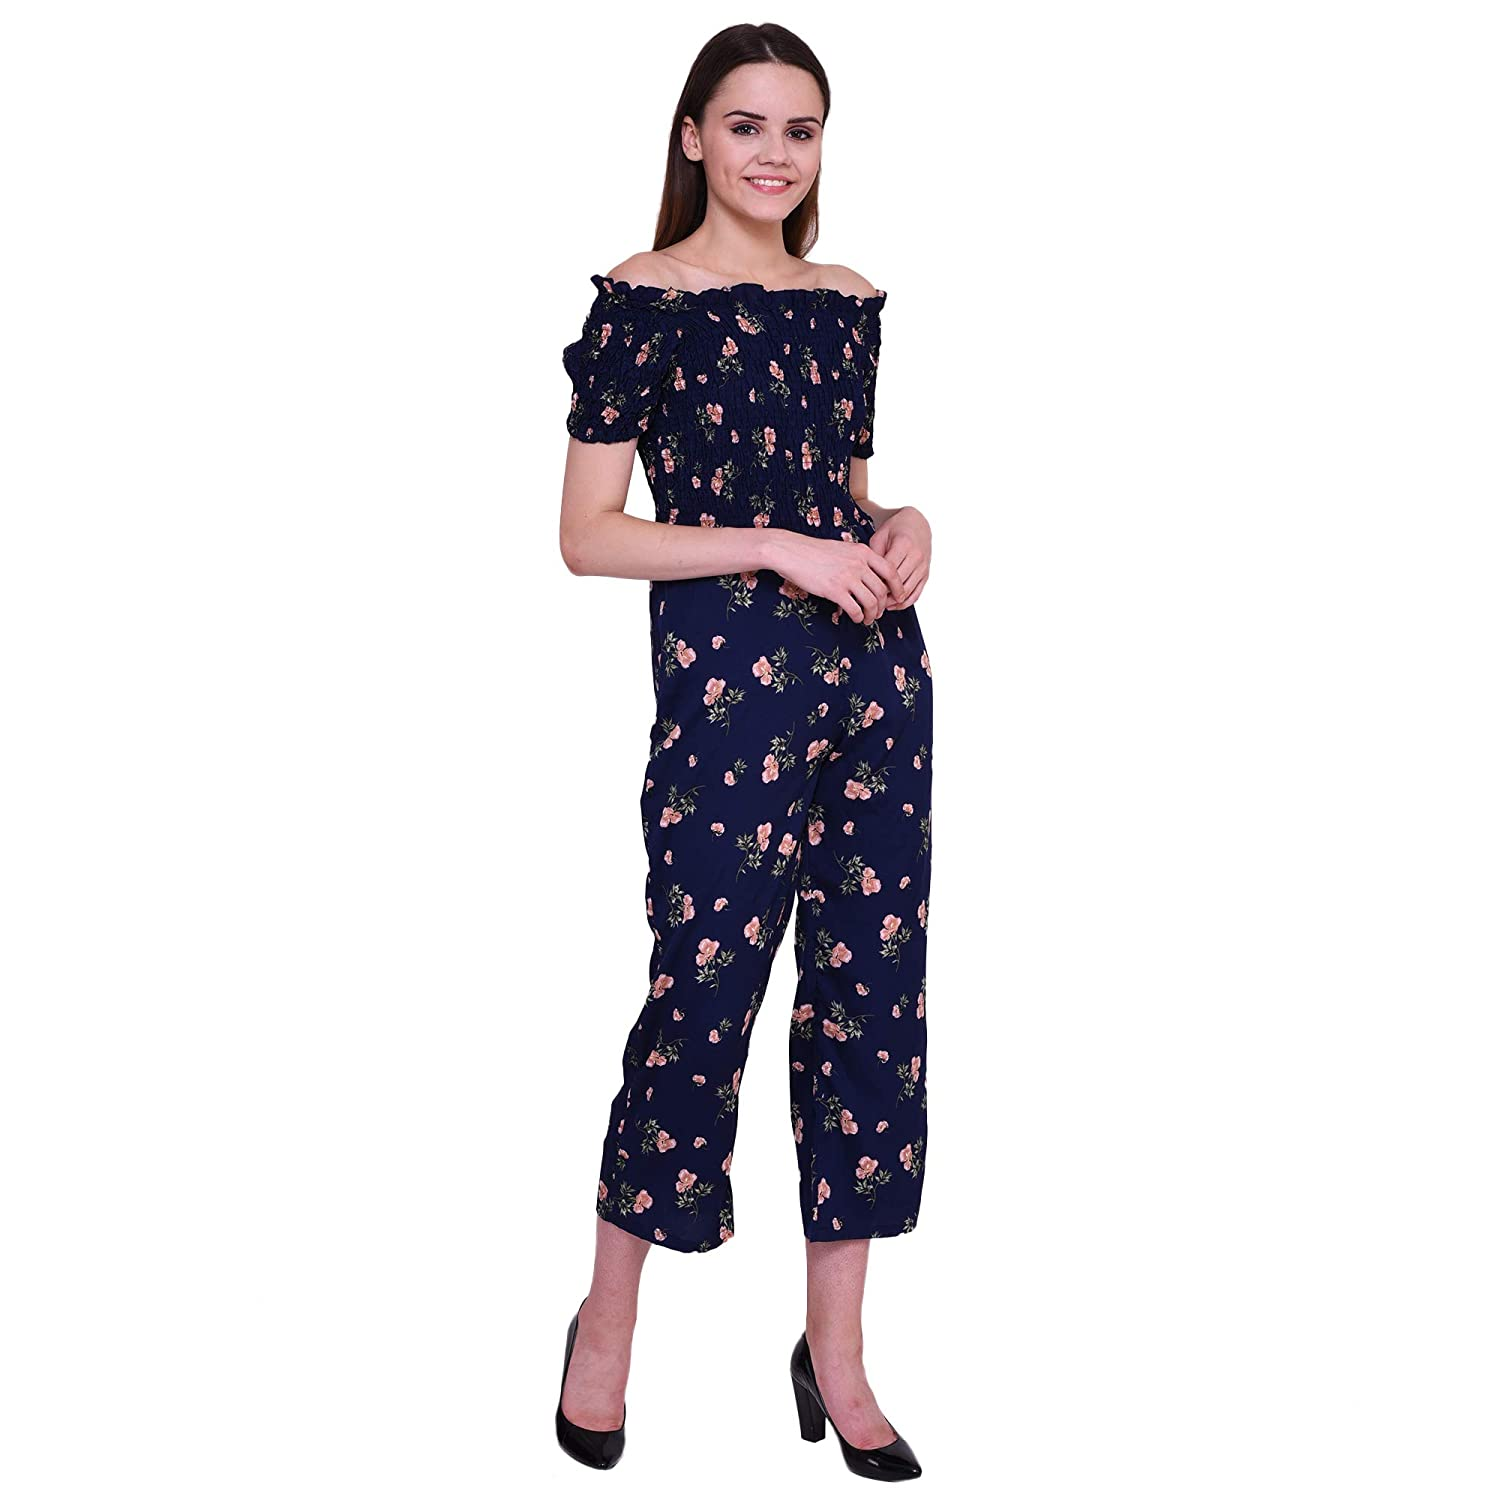 f229689a8625 Dare Above All Casual Half Sleeve Flower Printed Women s Jumpsuit   Amazon.in  Clothing   Accessories